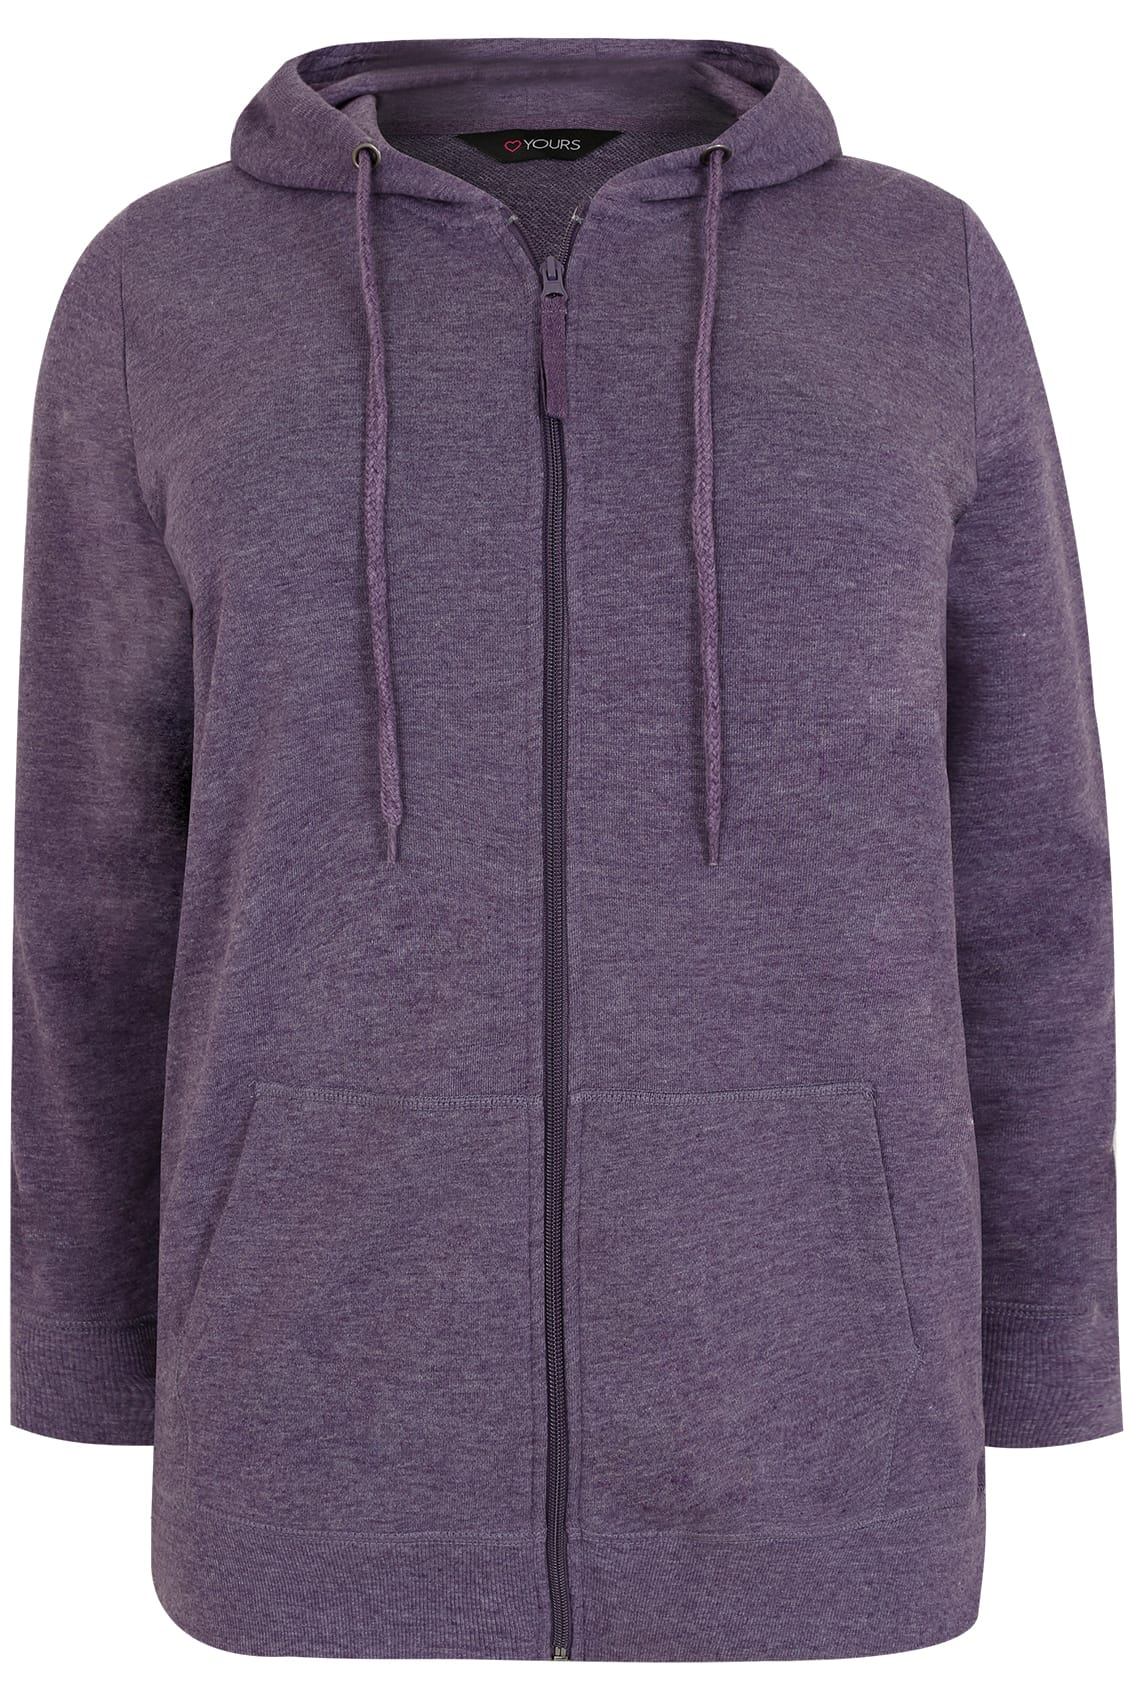 Purple Zip Through Hoodie With Pockets, Plus size 16 to 36